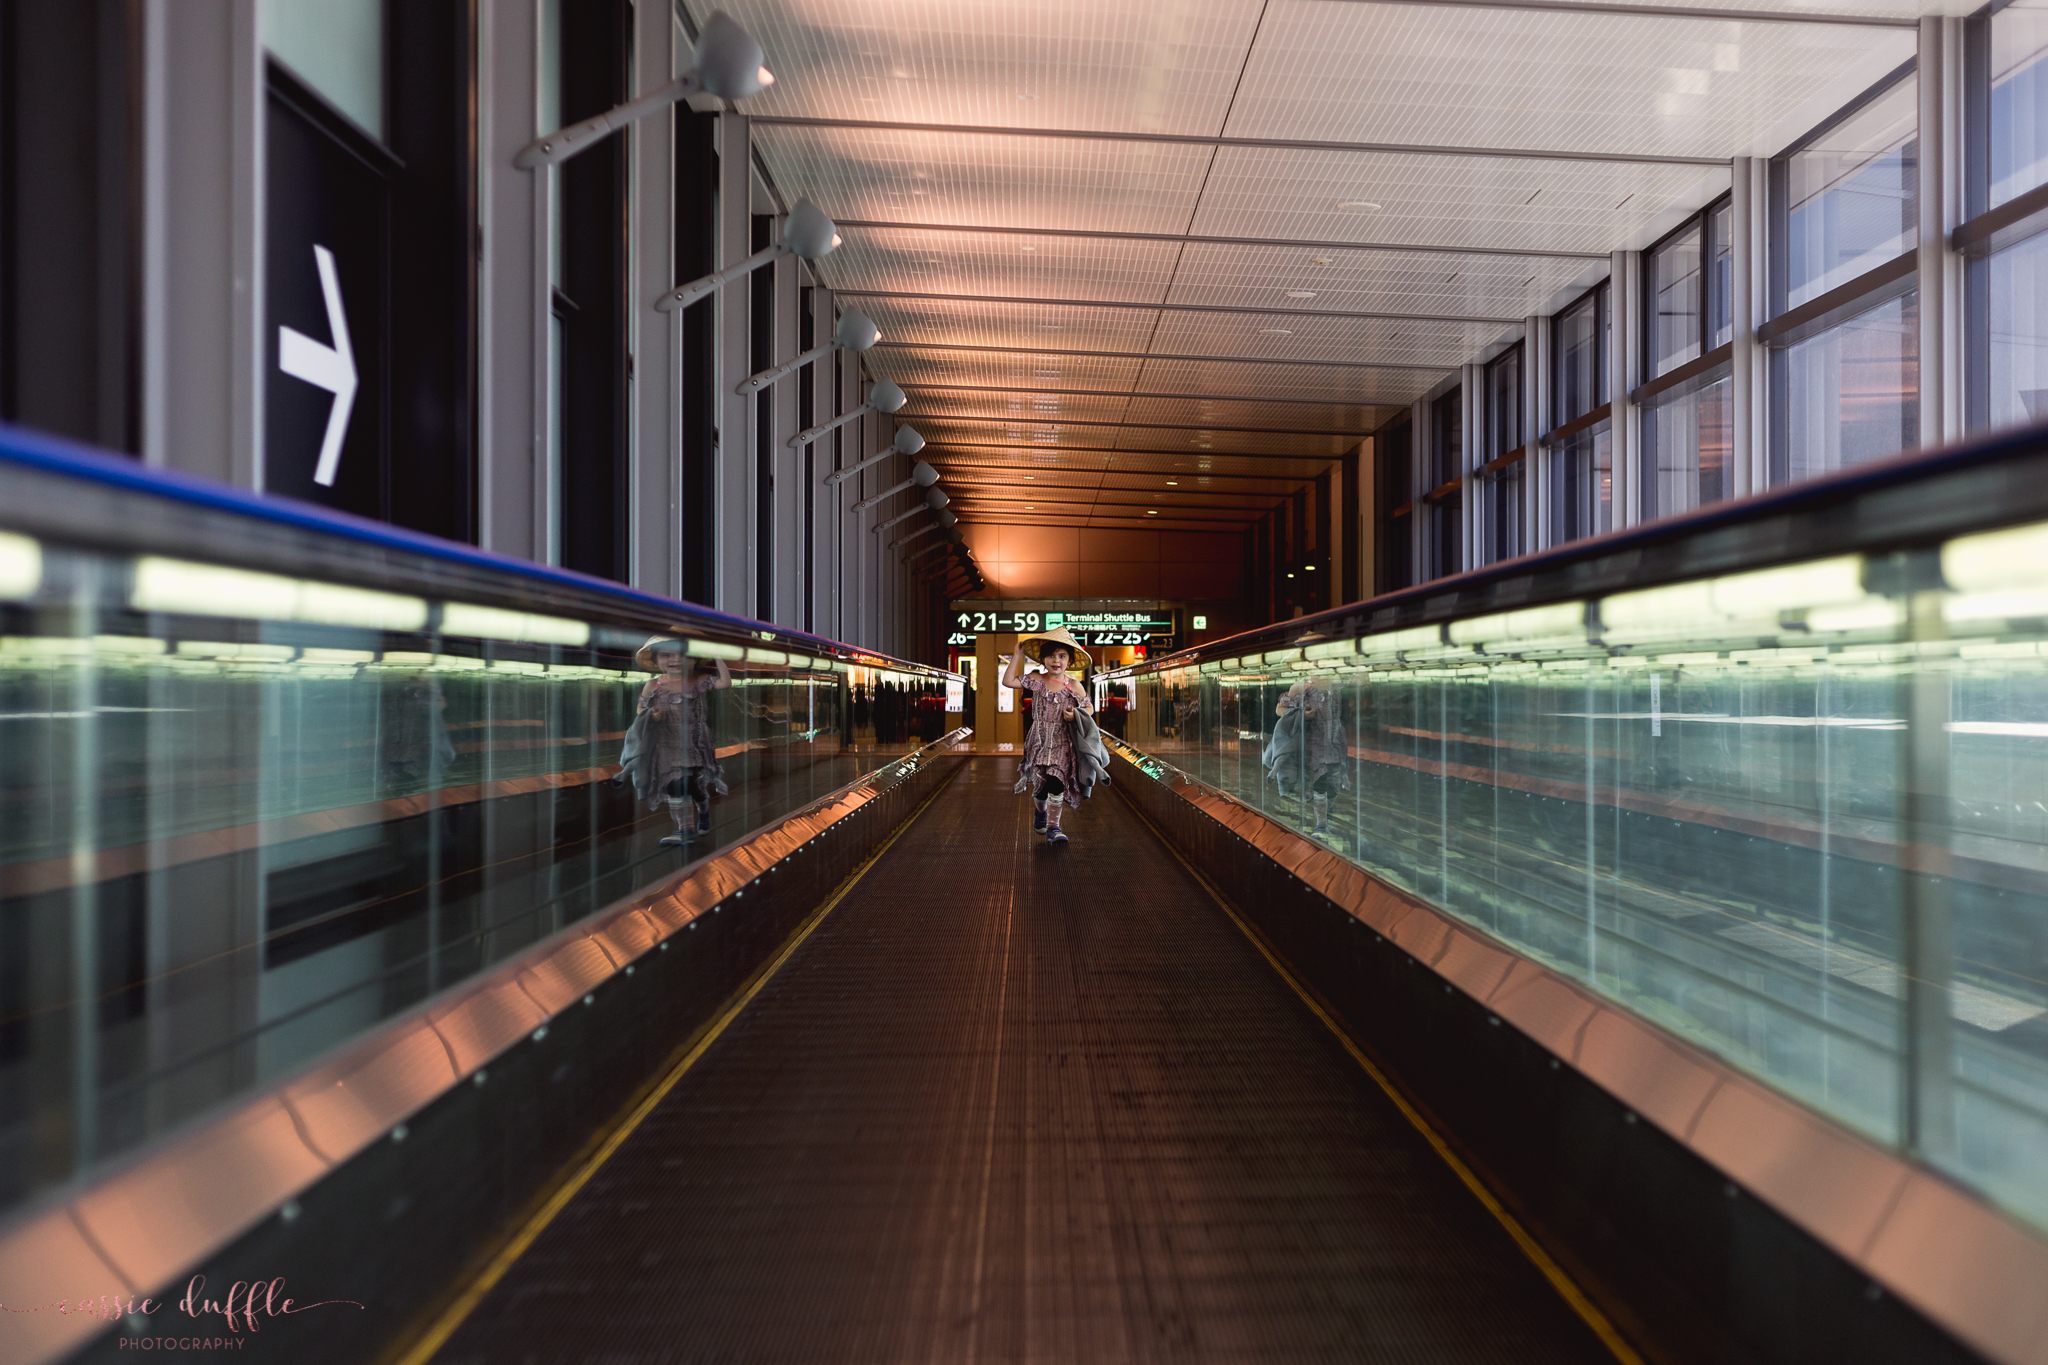 Traveling home through the Tokyo Airport